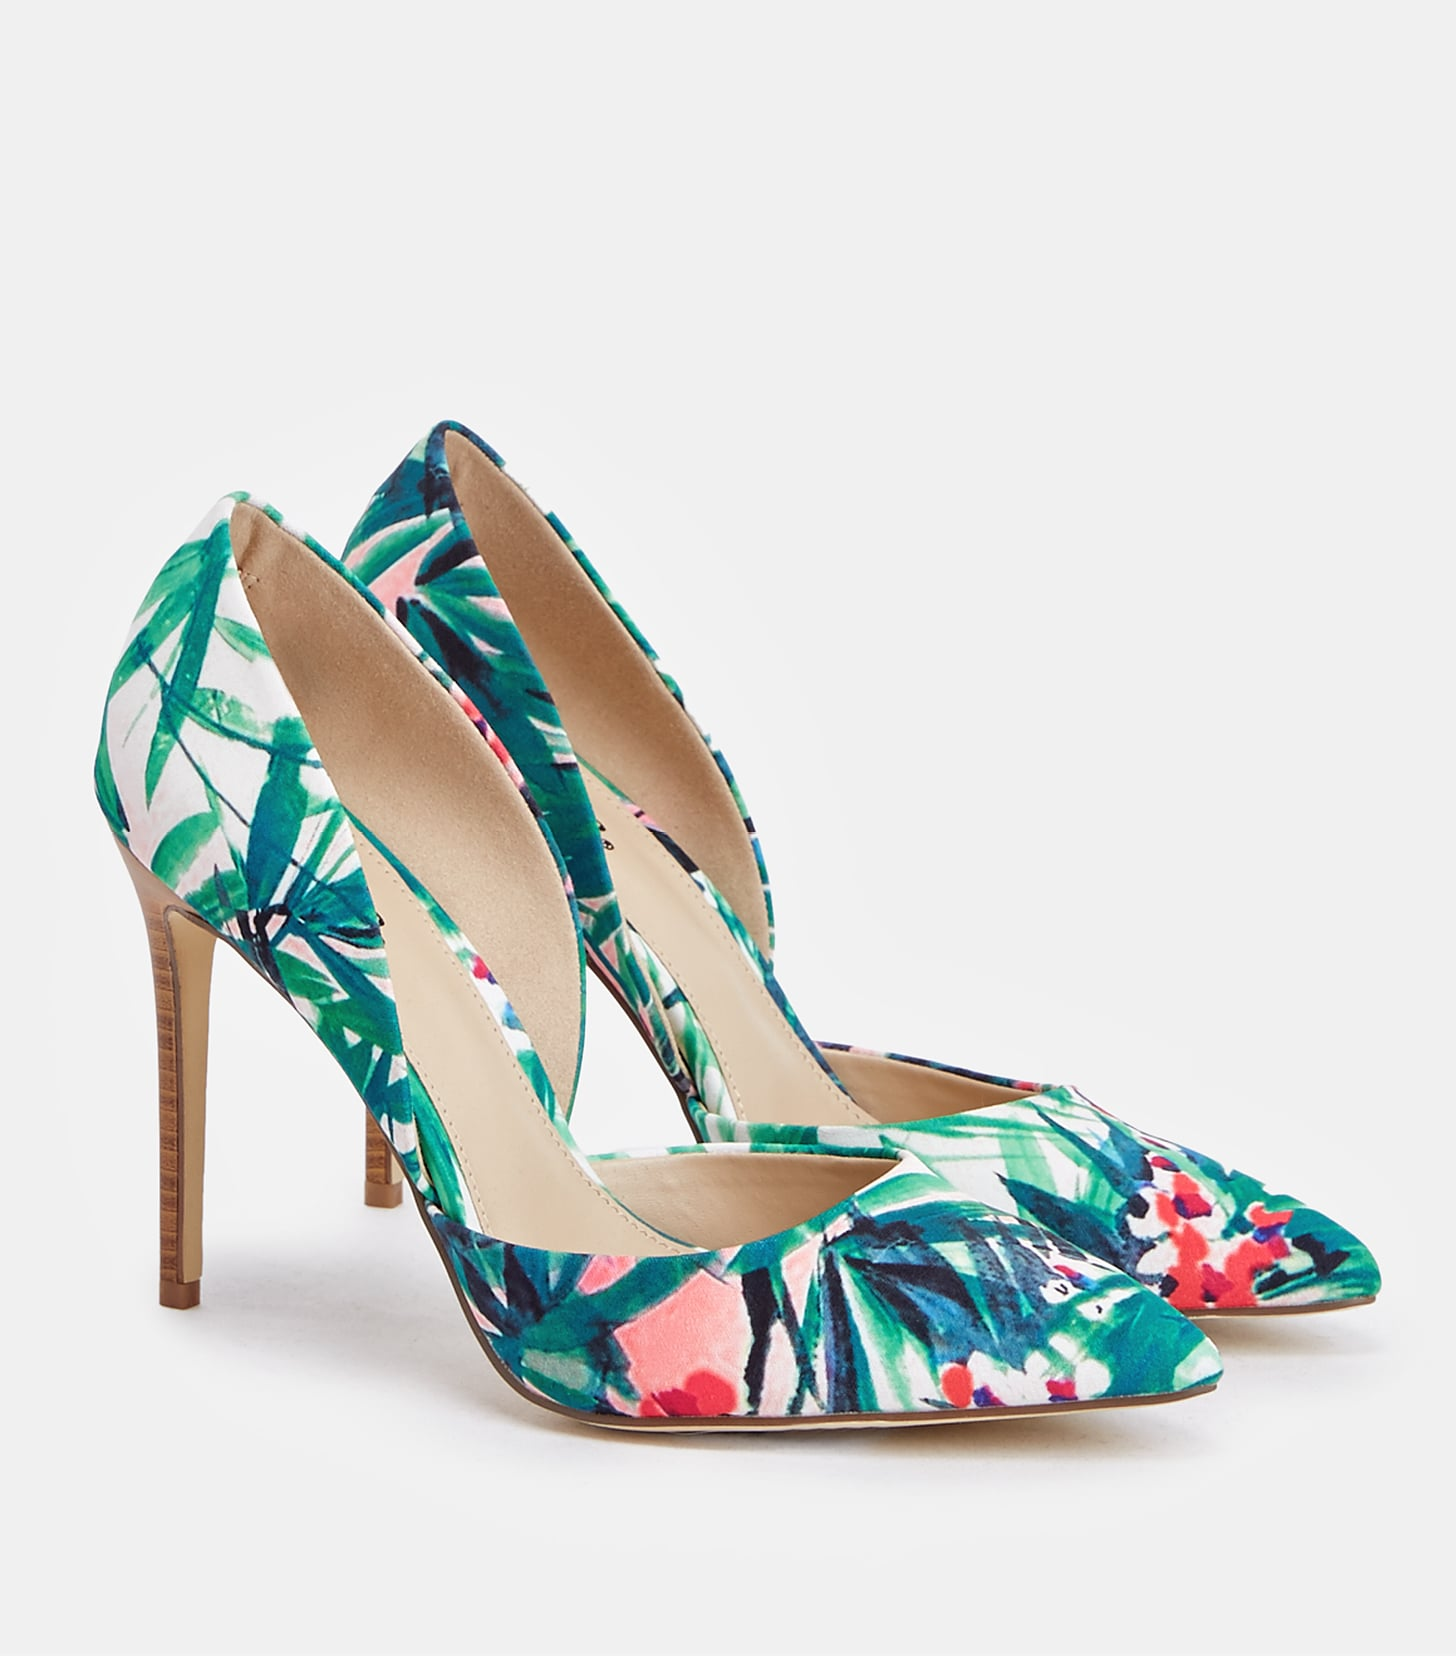 Shop Pretty Pumps - Pump Up The Rehearsal Dinner